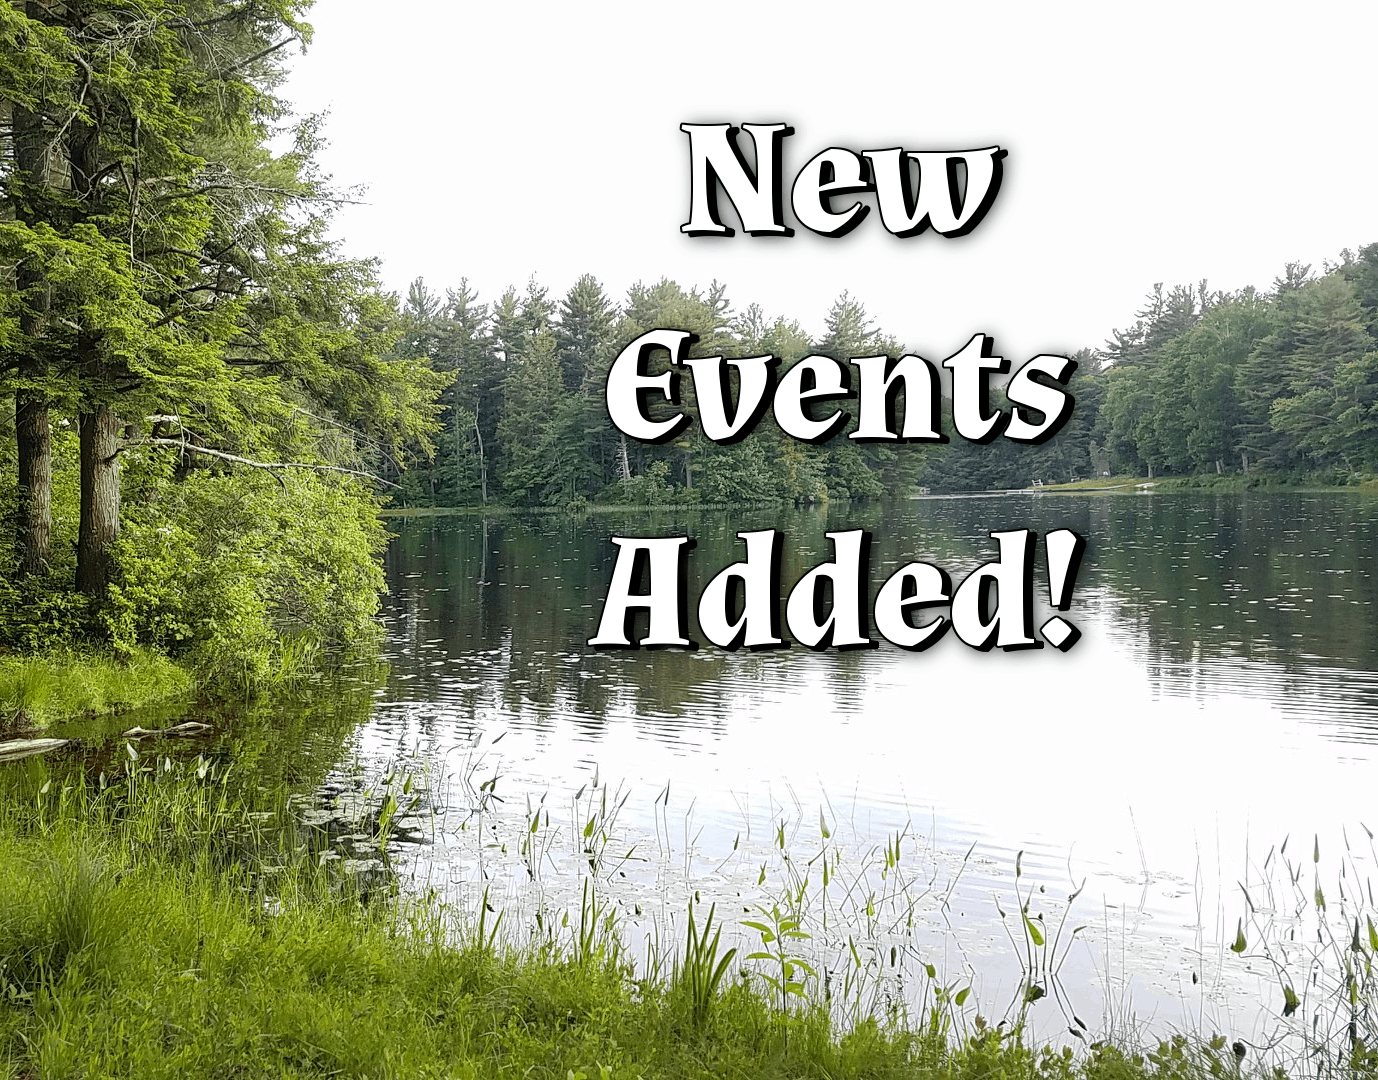 New Events Added!